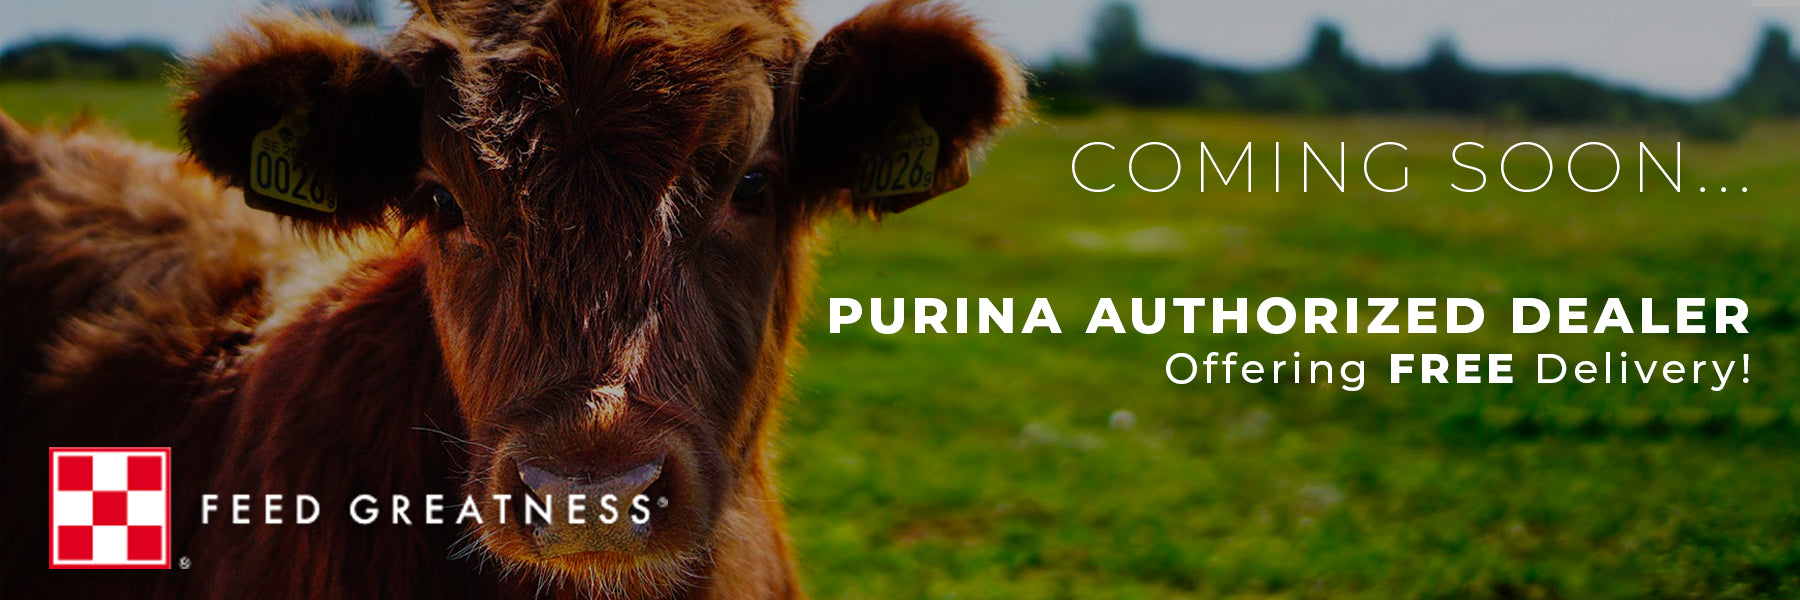 Coming soon. Purina authorized dealer